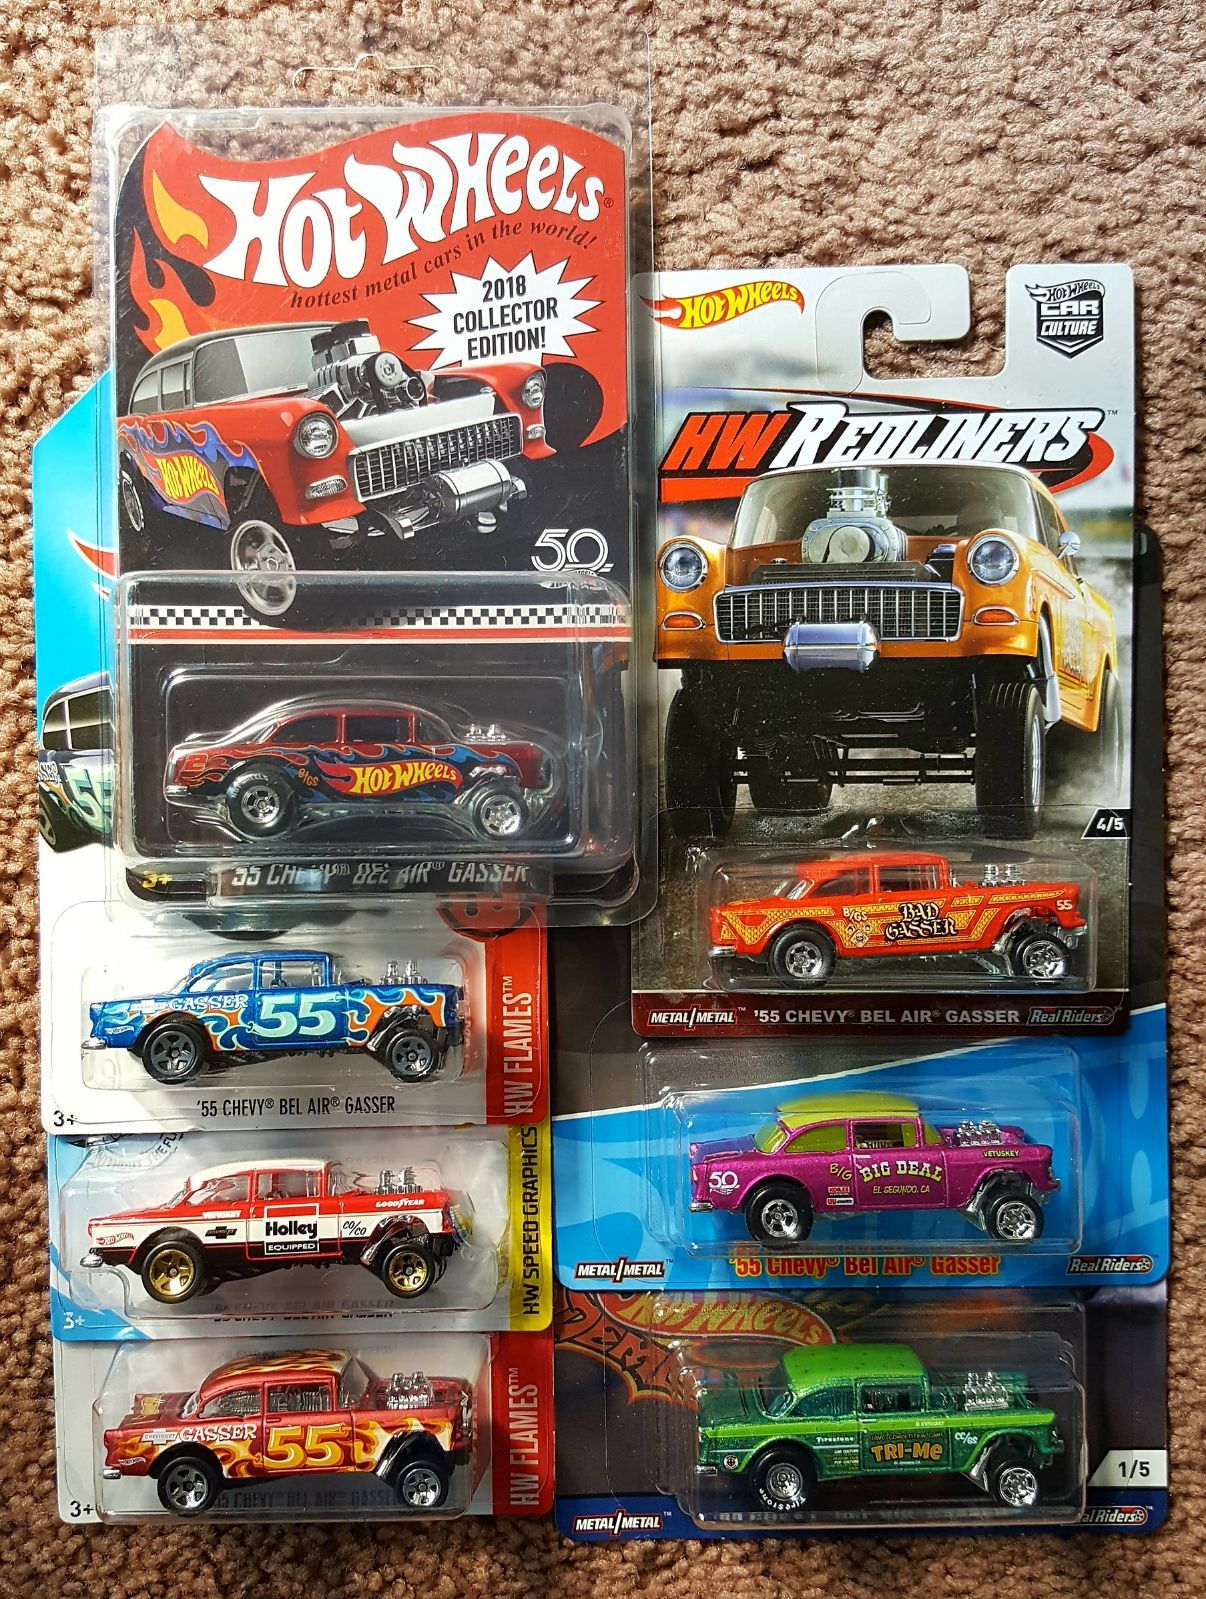 55 Chevy Gasser Lot With Premium Gassers And Rlc Car Hot Wheels Cars Toys Hot Wheels Toys Hot Wheels [ 1599 x 1206 Pixel ]